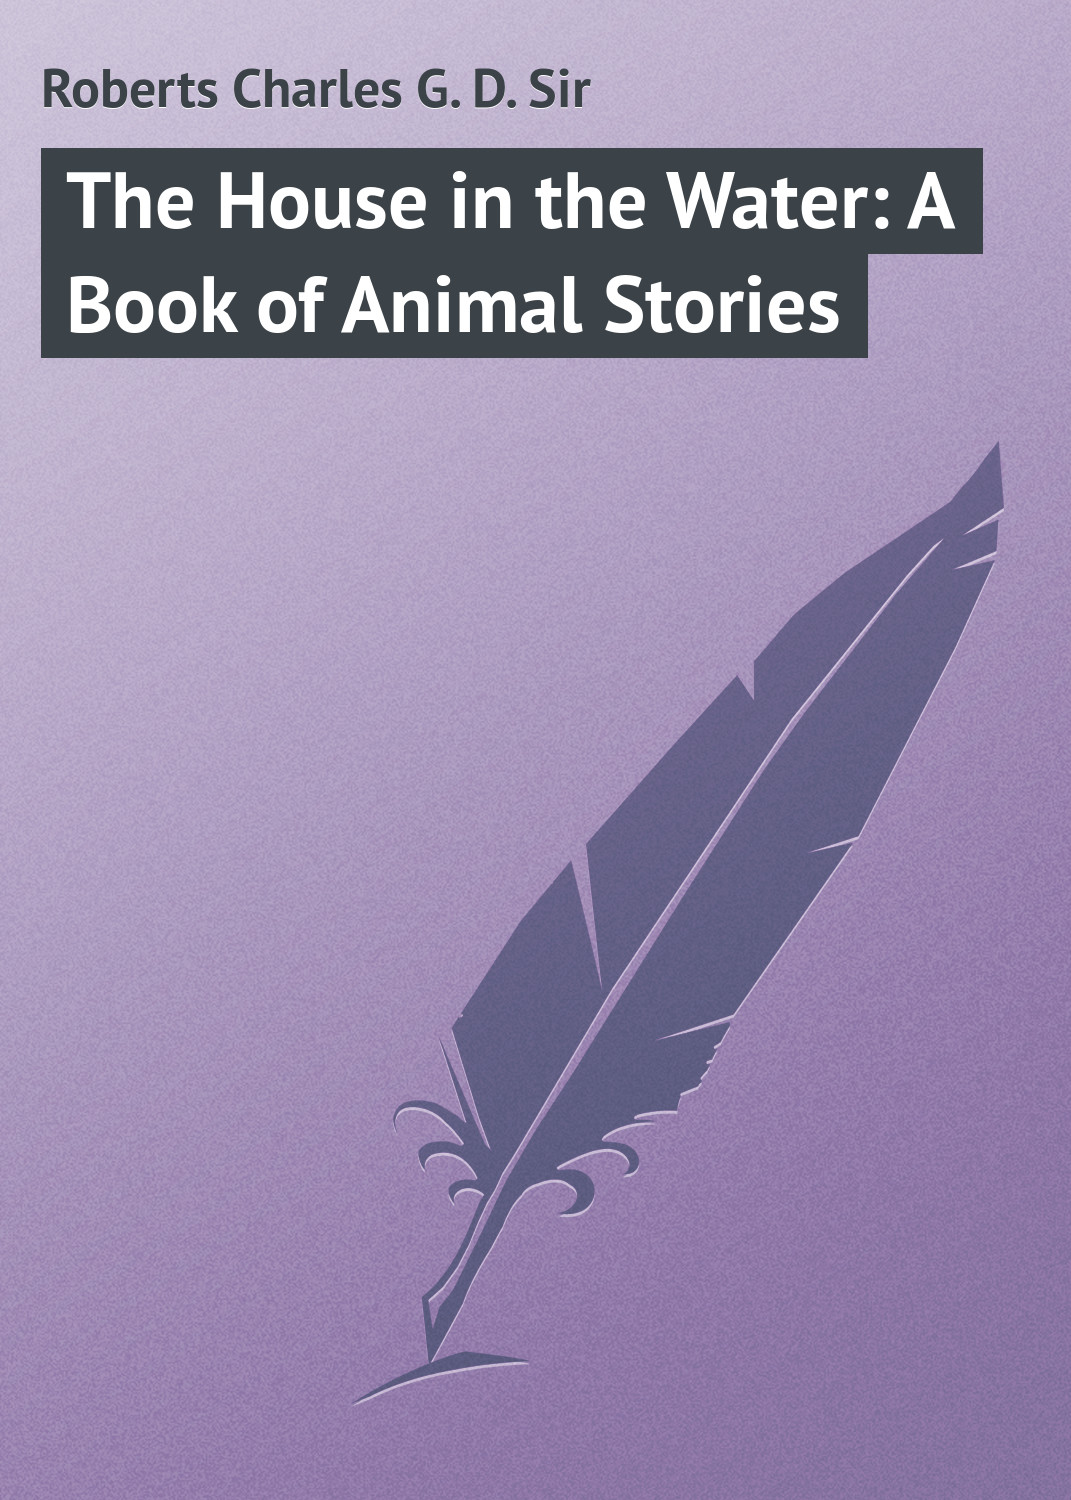 Roberts Charles G. D. The House in the Water: A Book of Animal Stories ключница акита 23х33 см путешествия aki 7372